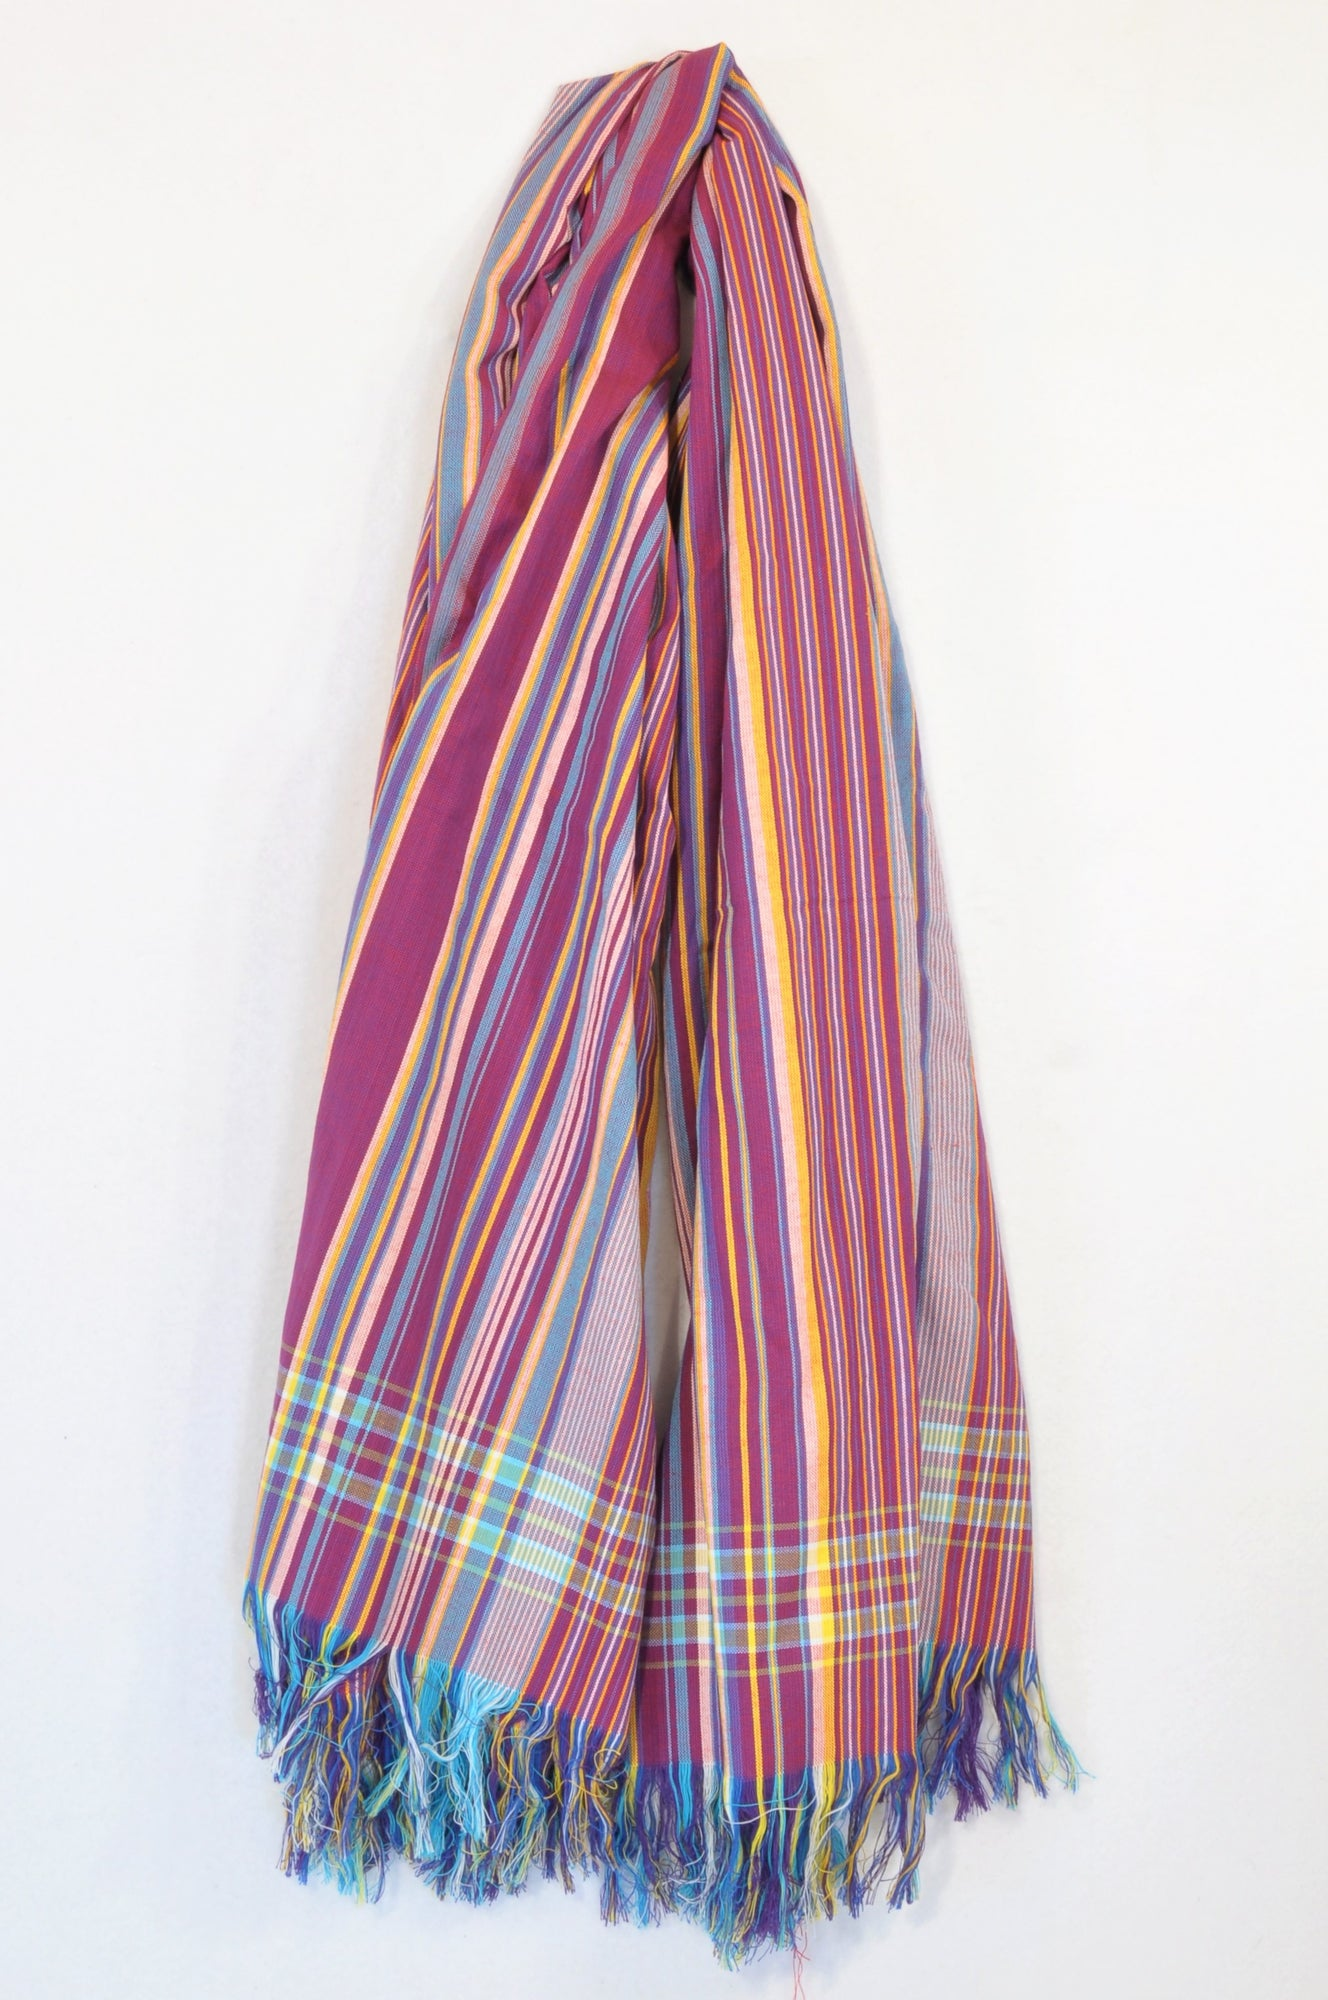 Unbranded Purple & Yellow Pinstripe Tassel Beach Wrap Accessory Women